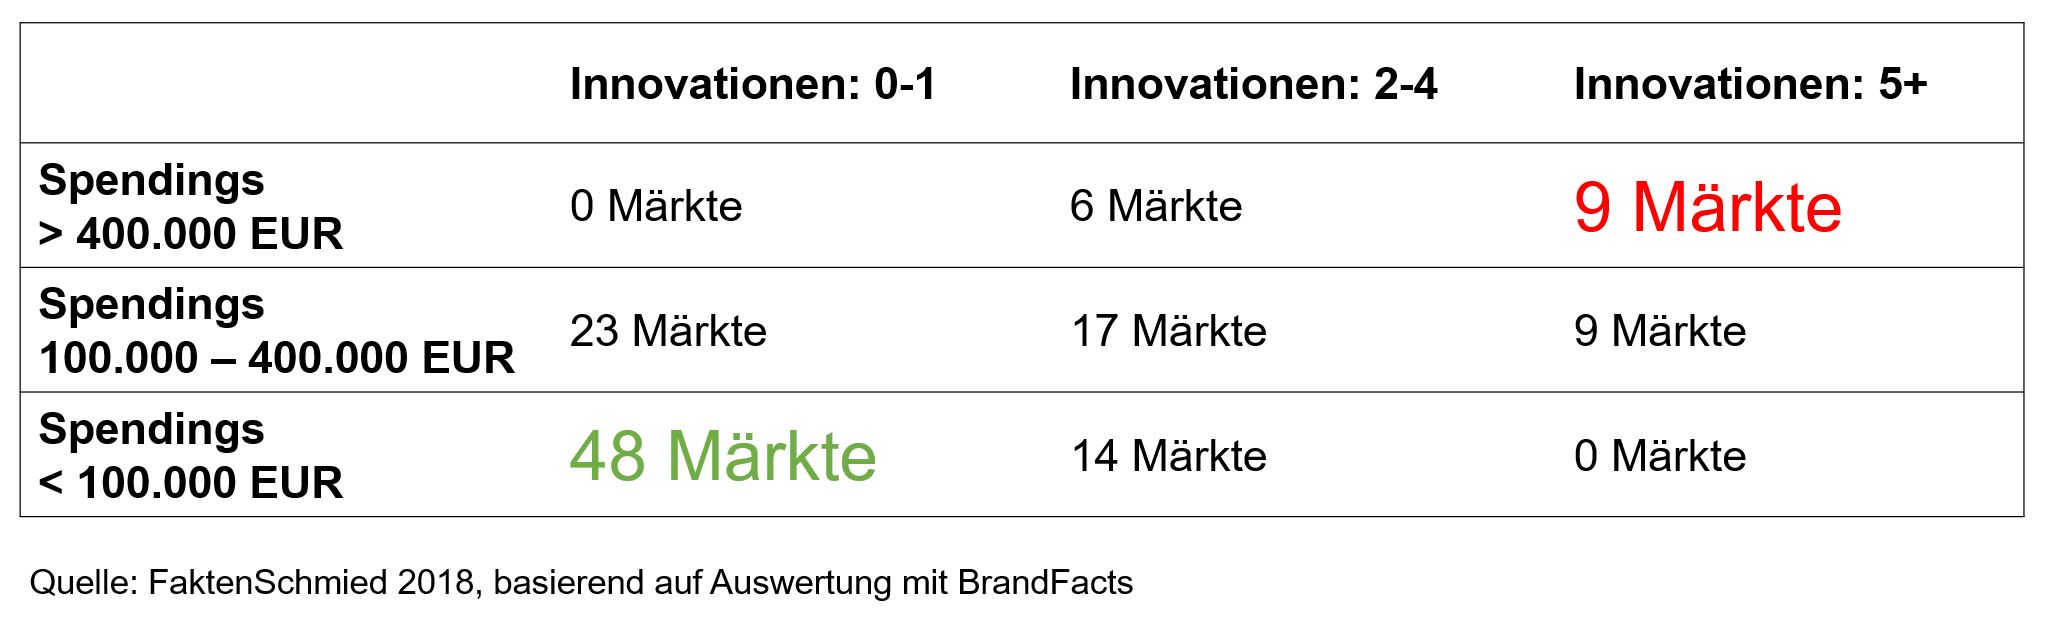 Markt-Matrix nach Spendings und Innovationen